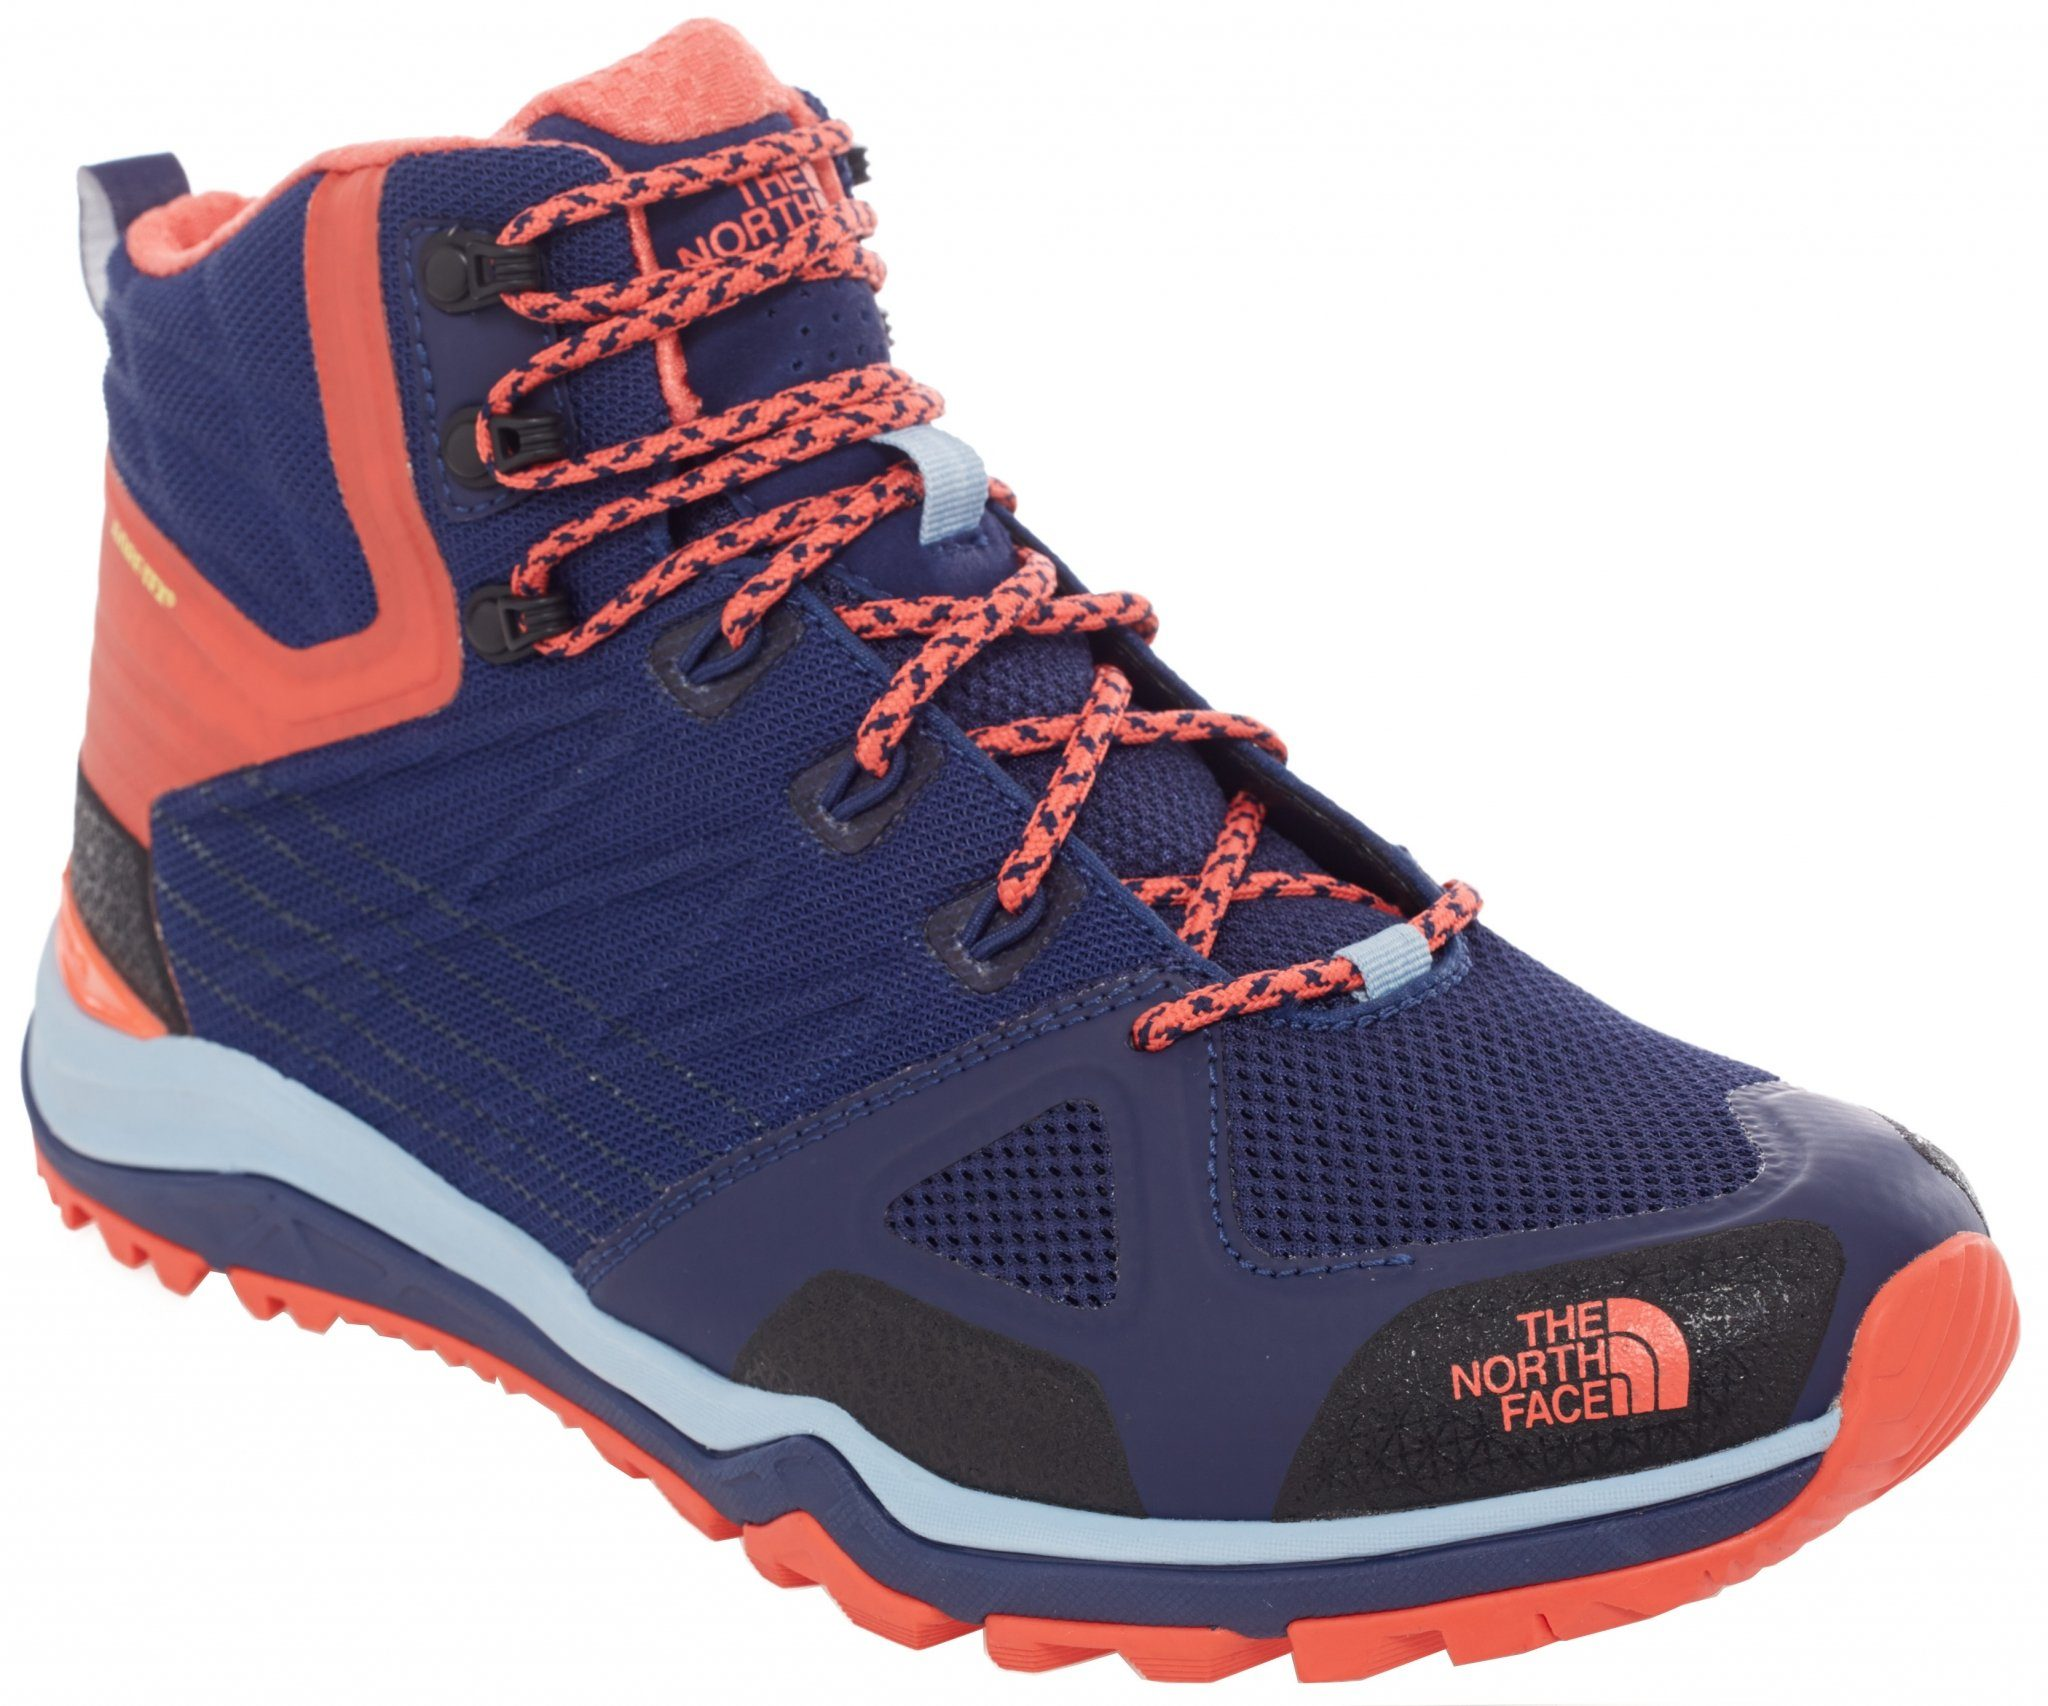 The North Face Kletterschuh »Ultra Fastpack 2 Mid GTX Shoes Women«